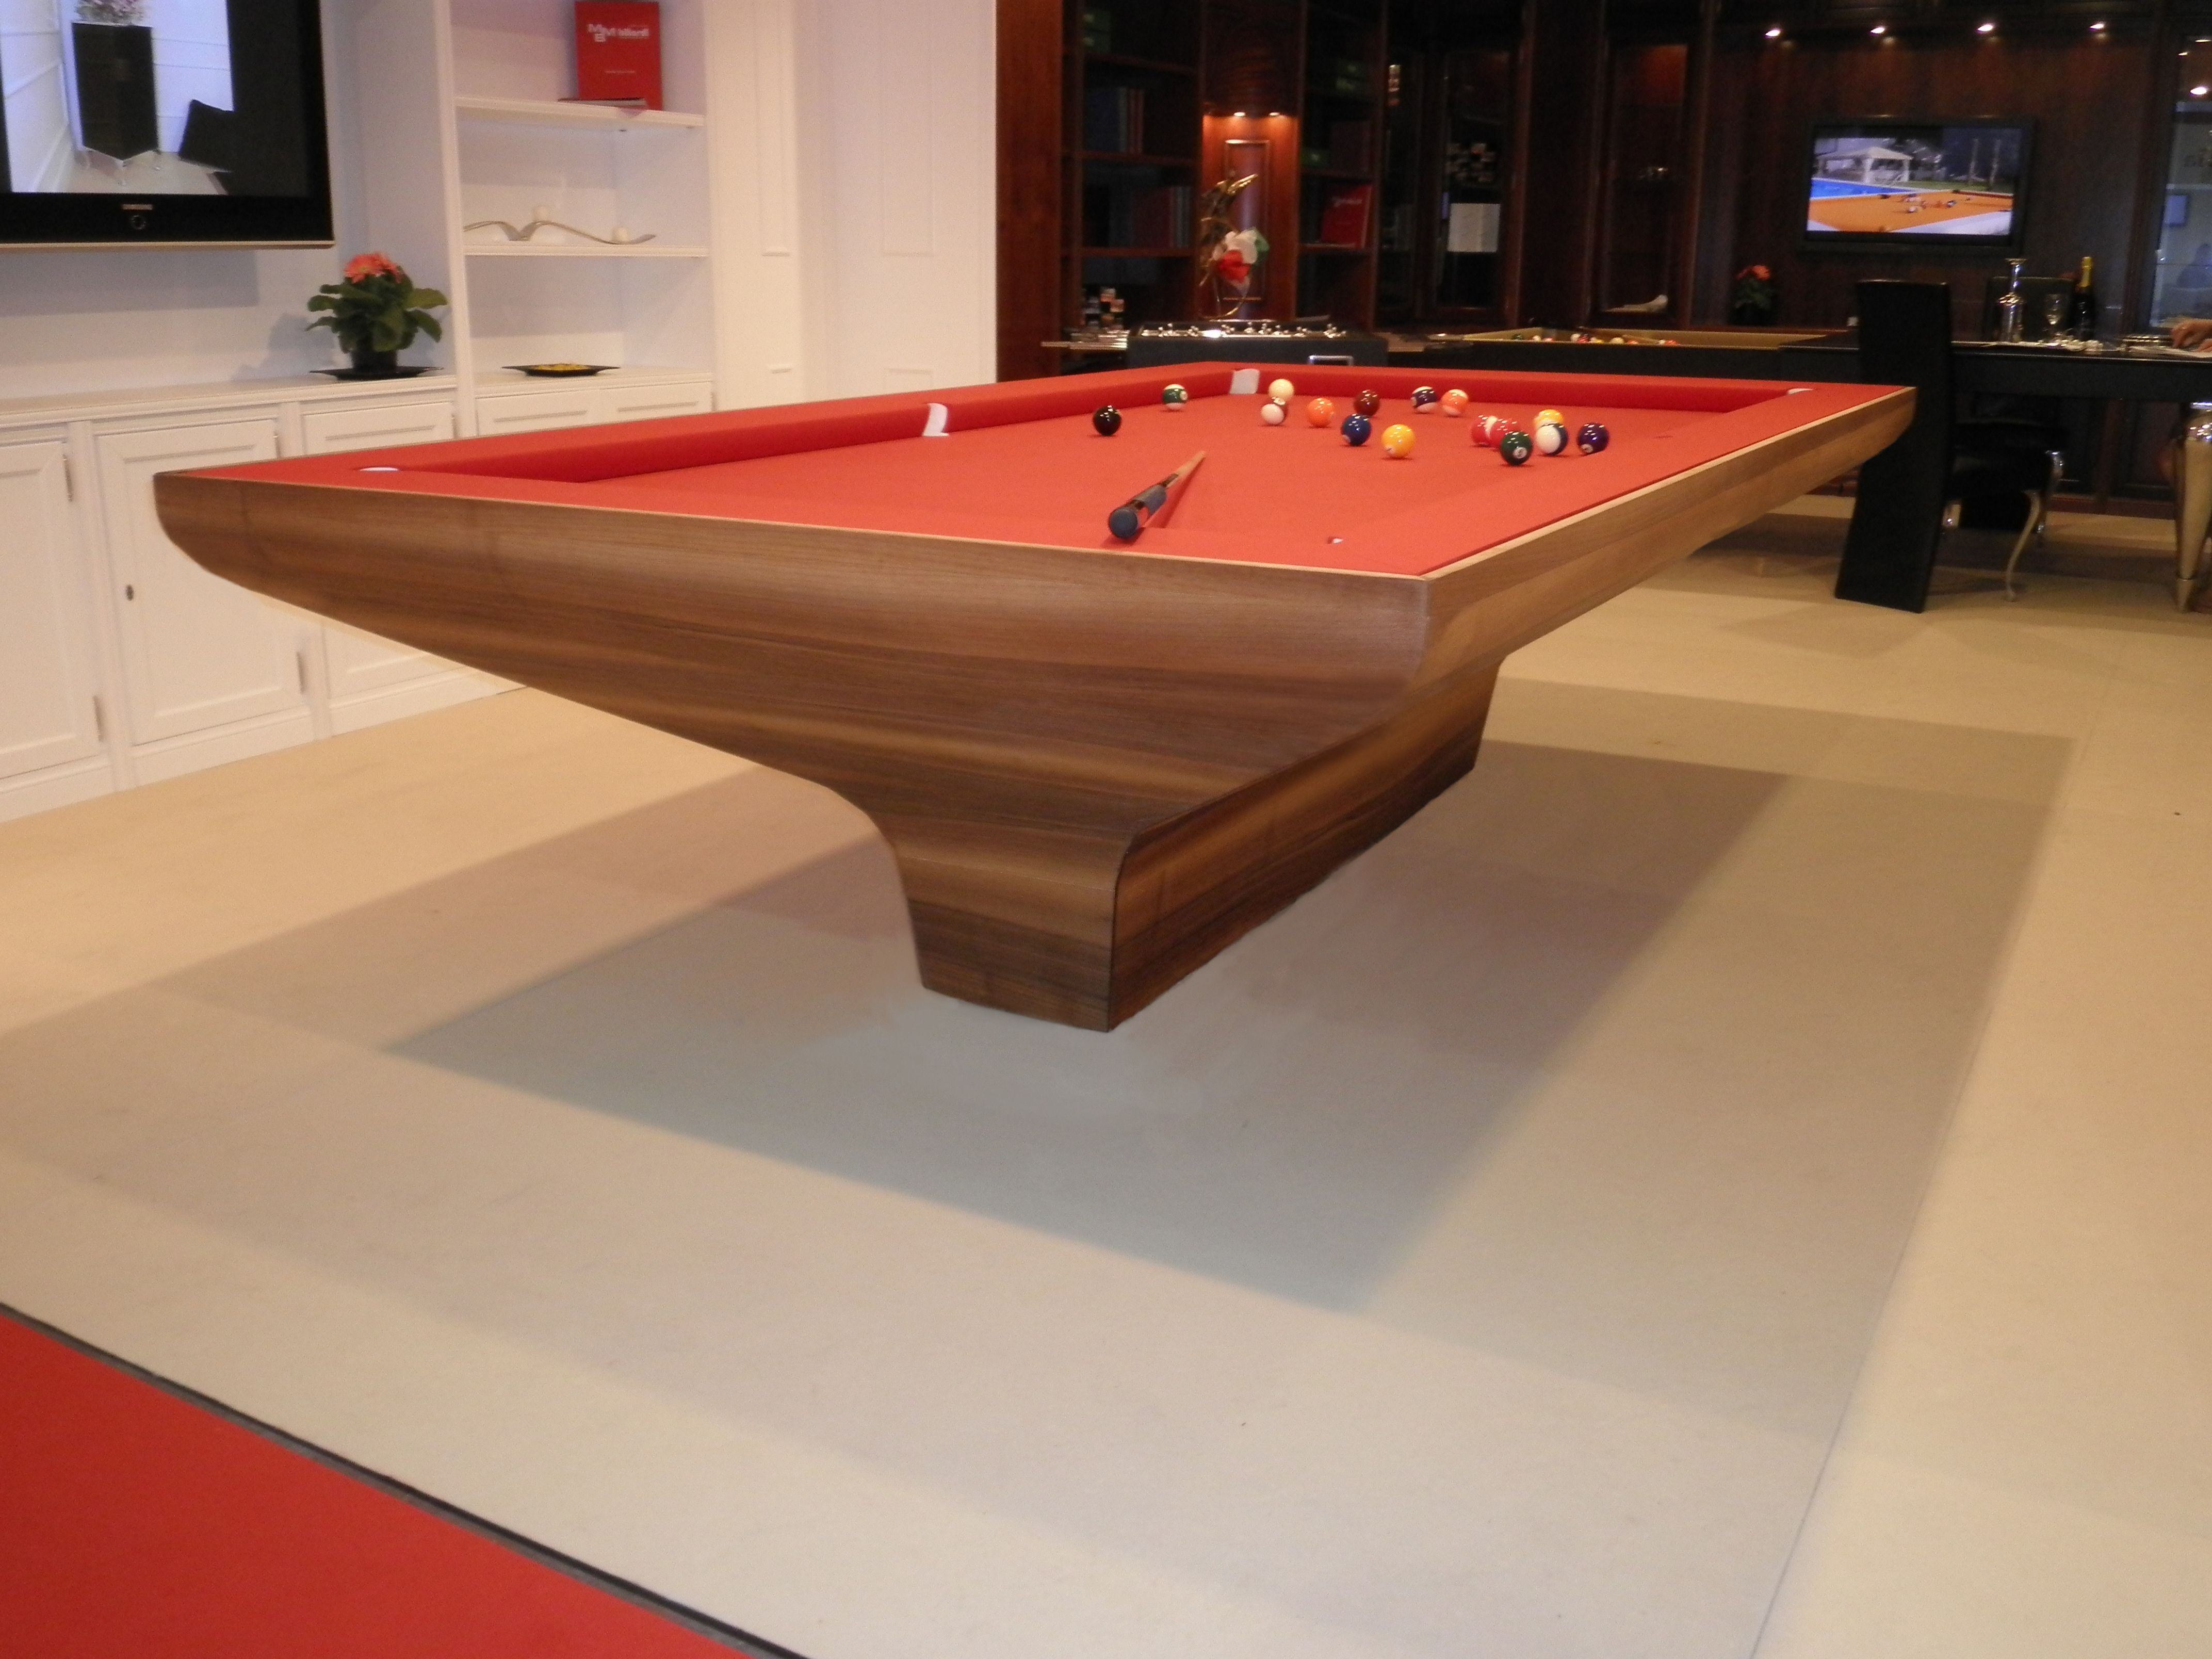 Unique pool tables family room contemporary with bold pool table cool - Unique Pool Tables Family Room Contemporary With Bold Pool Table Cool